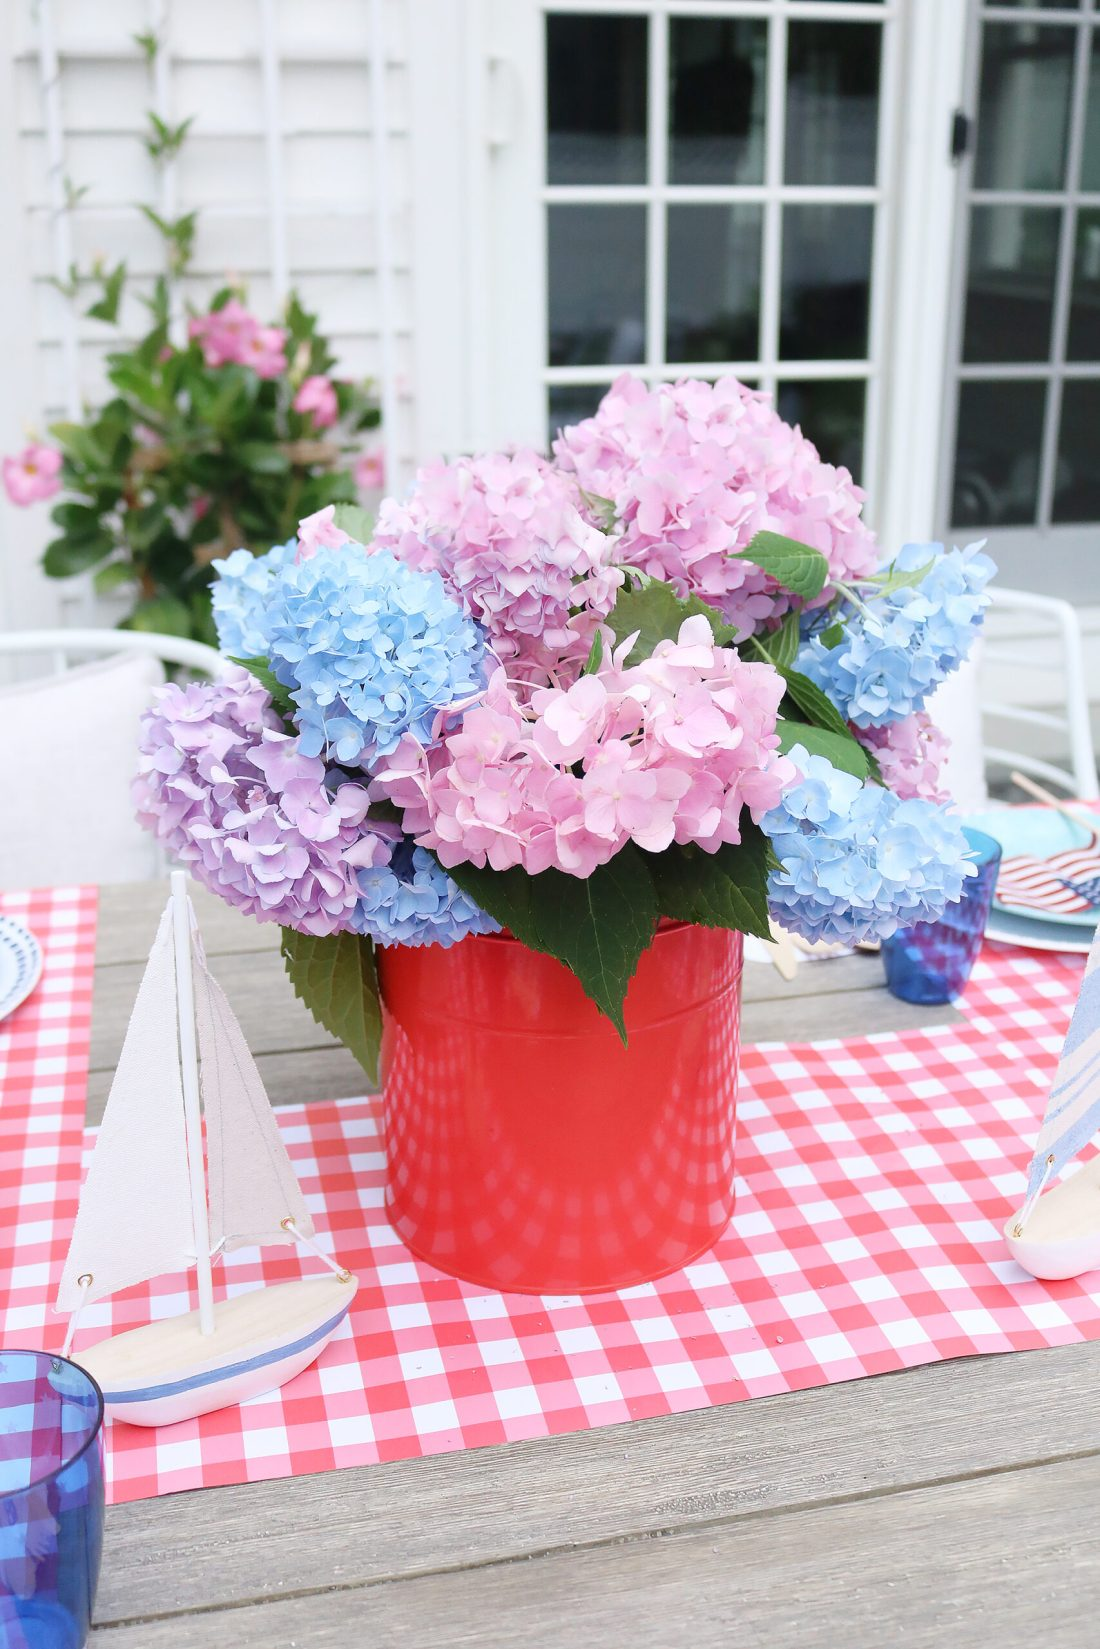 4th of july flower hydrangea arrangement.  This year host a 4th of July barbecue party and sharing simple budget-friendly decorating tips, 4th of July outfit, red gingham dress, 4th of July entertaining tips, american flag decorations, backyard party, 4th of july tablescape  || Darling Darleen Top CT Lifestyle Blogger #4thofjuly #4thofjulyoutfit